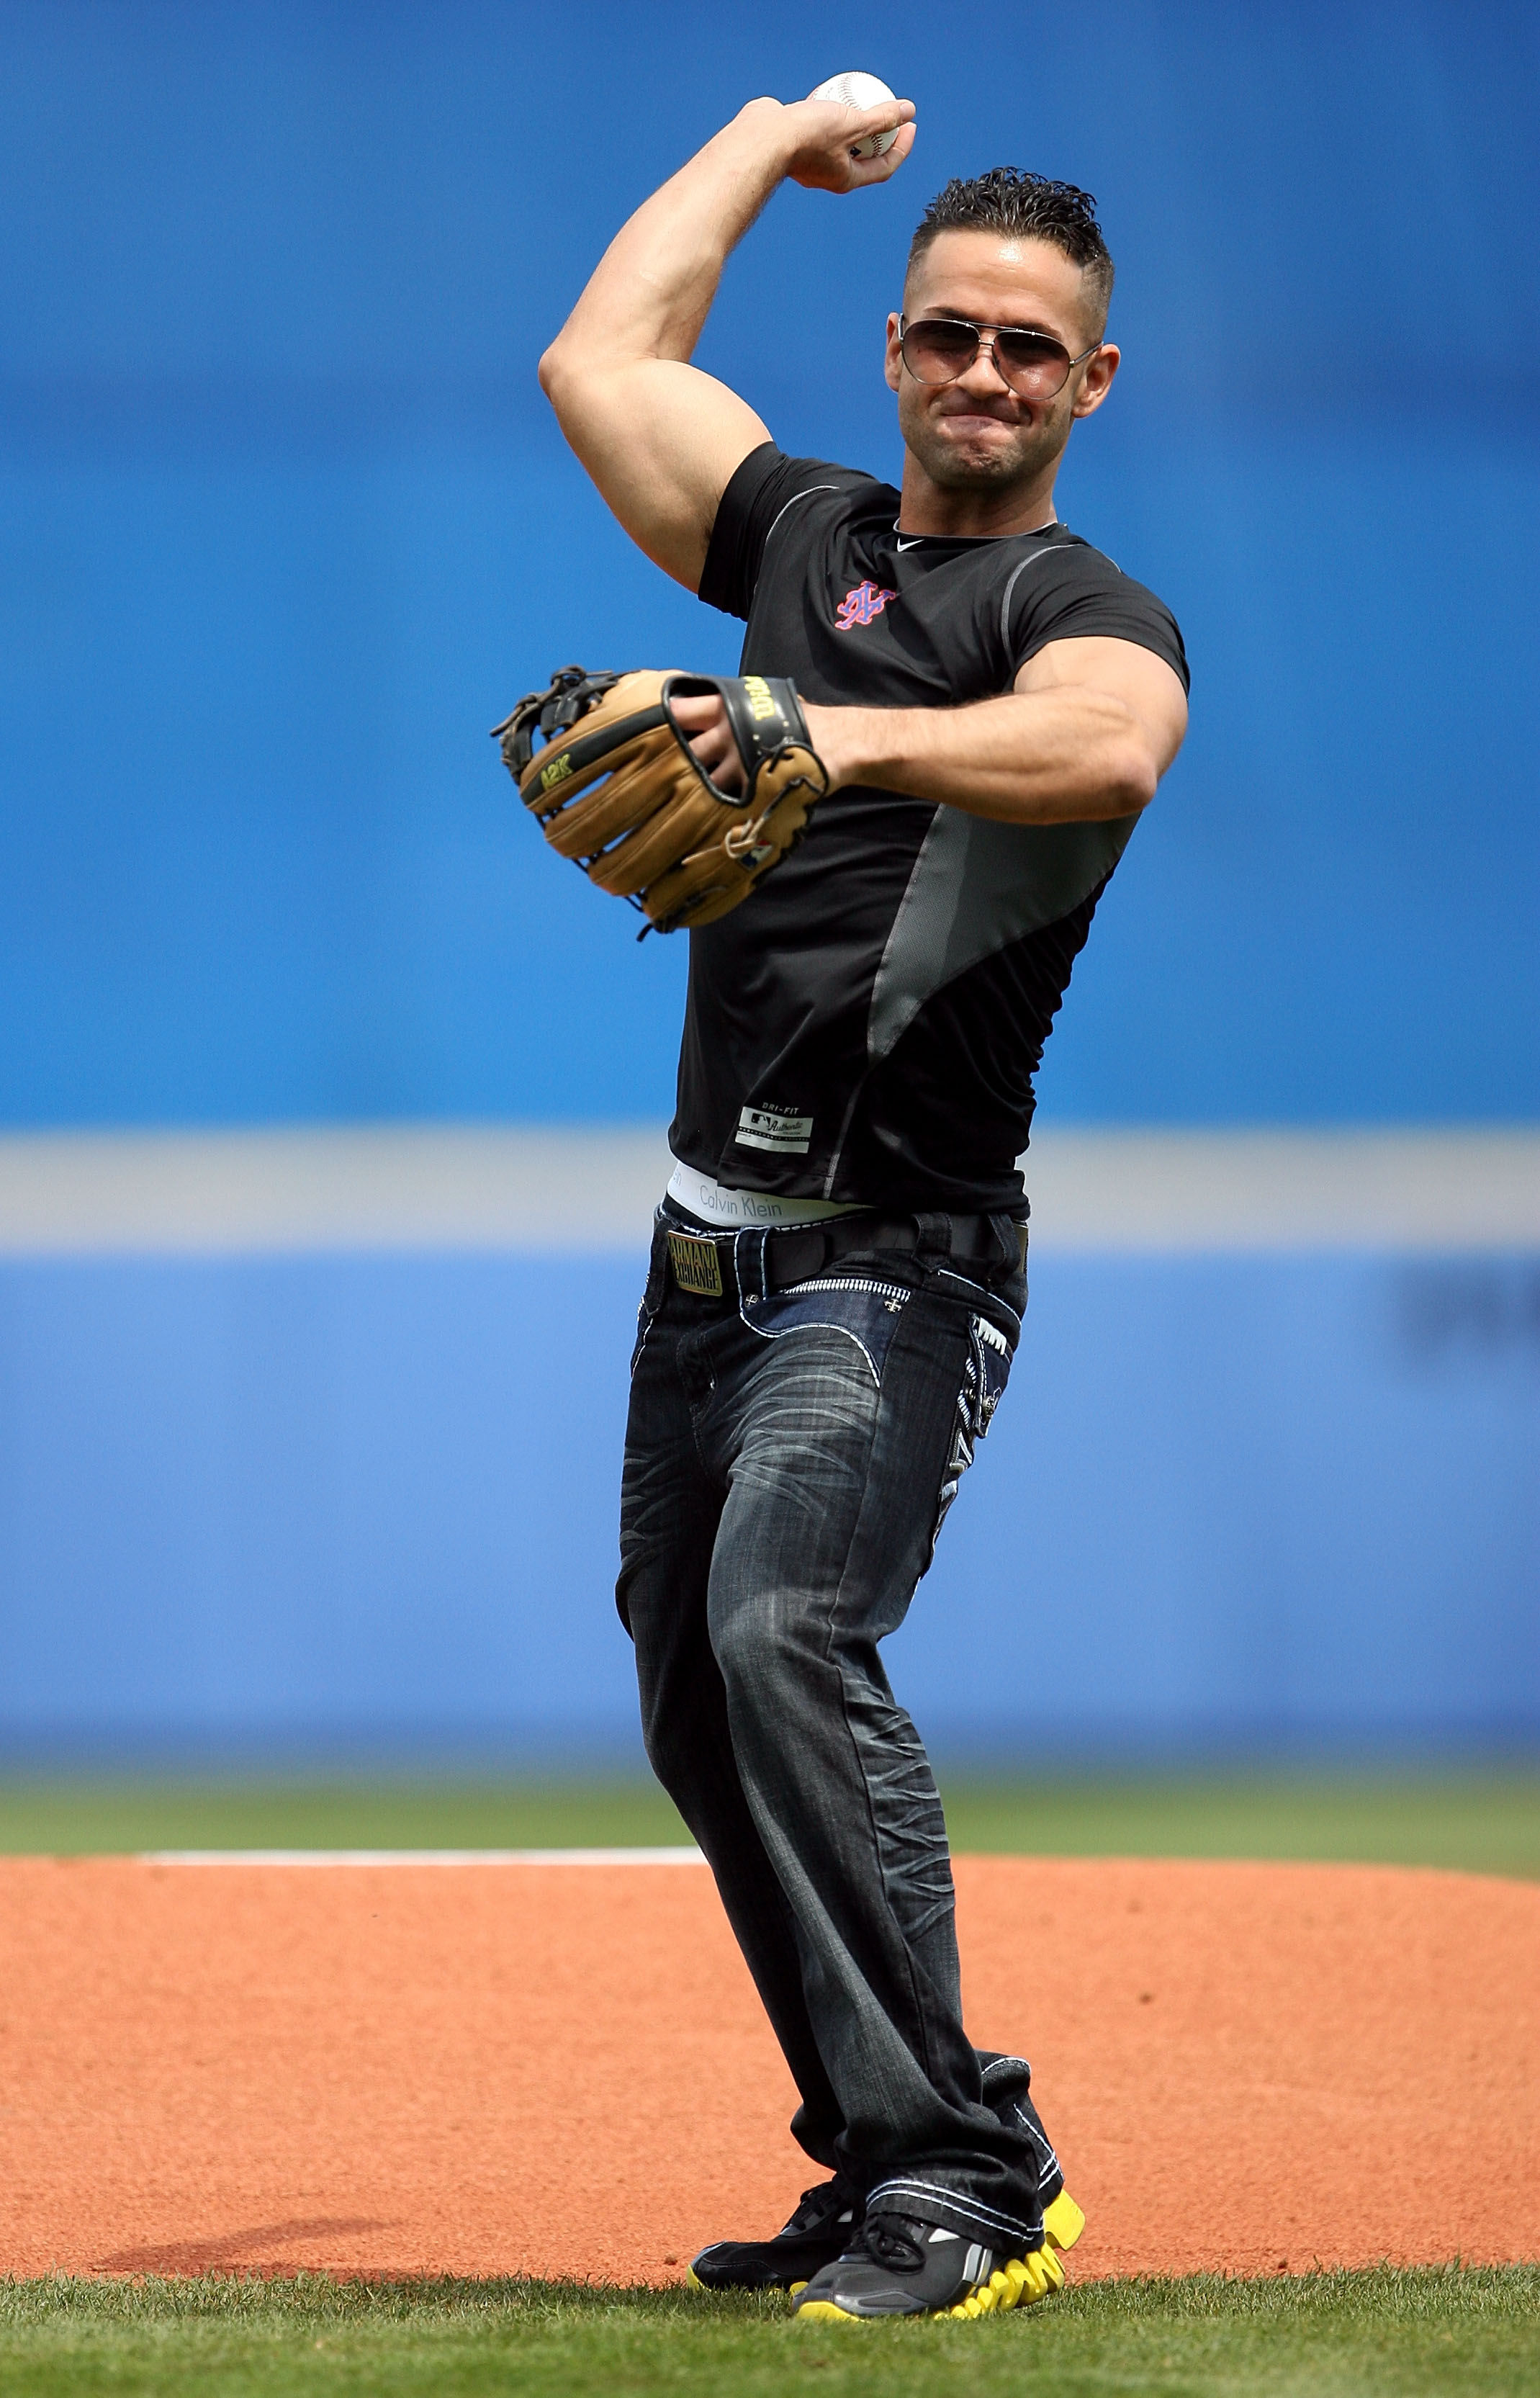 PORT ST. LUCIE, FL - MARCH 24:  Mike 'The Situation' Sorrentino of the reality show Jersey Shore, throws out the first pitch before the New York Mets take on the Houston Astros at Tradition Field on March 24, 2010 in Port St. Lucie, Florida.  (Photo by Do